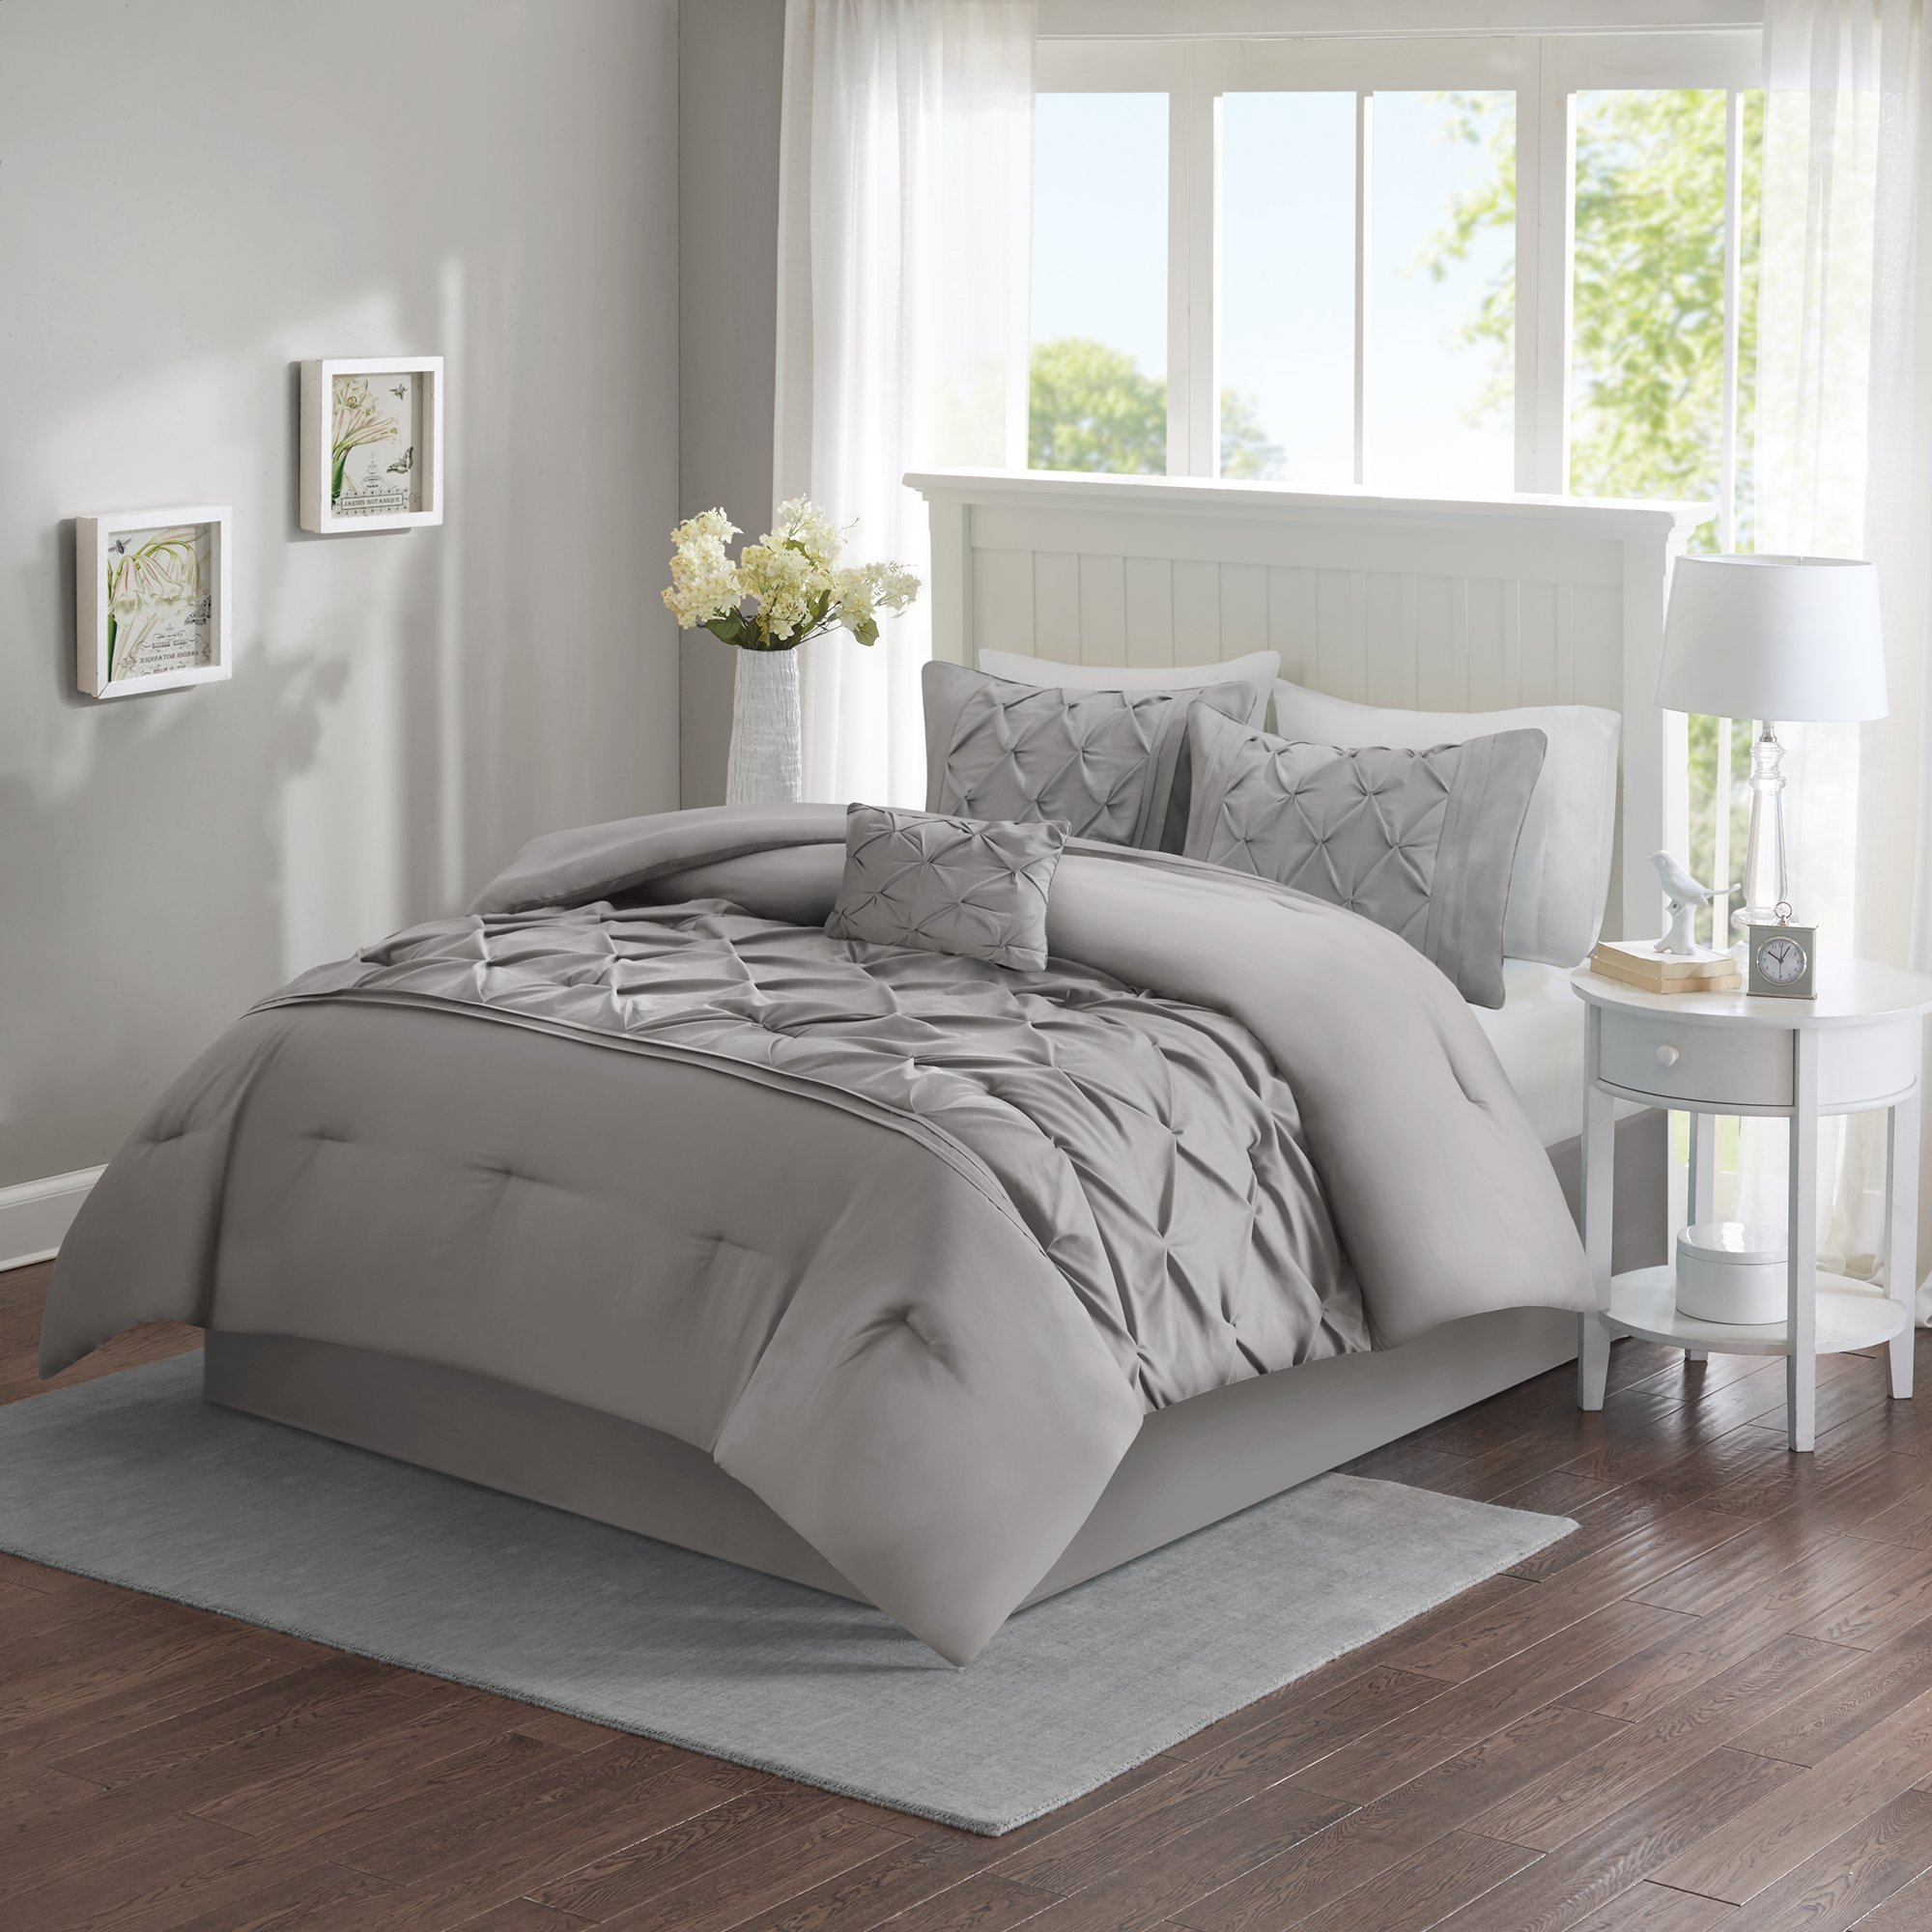 Comfort Spaces – Cavoy Comforter Set - 5 Piece – Tufted Pattern – Gray – Full/Queen size, includes 1 Comforter, 2 Shams, 1 Decorative Pillow, 1 Bed Skirt